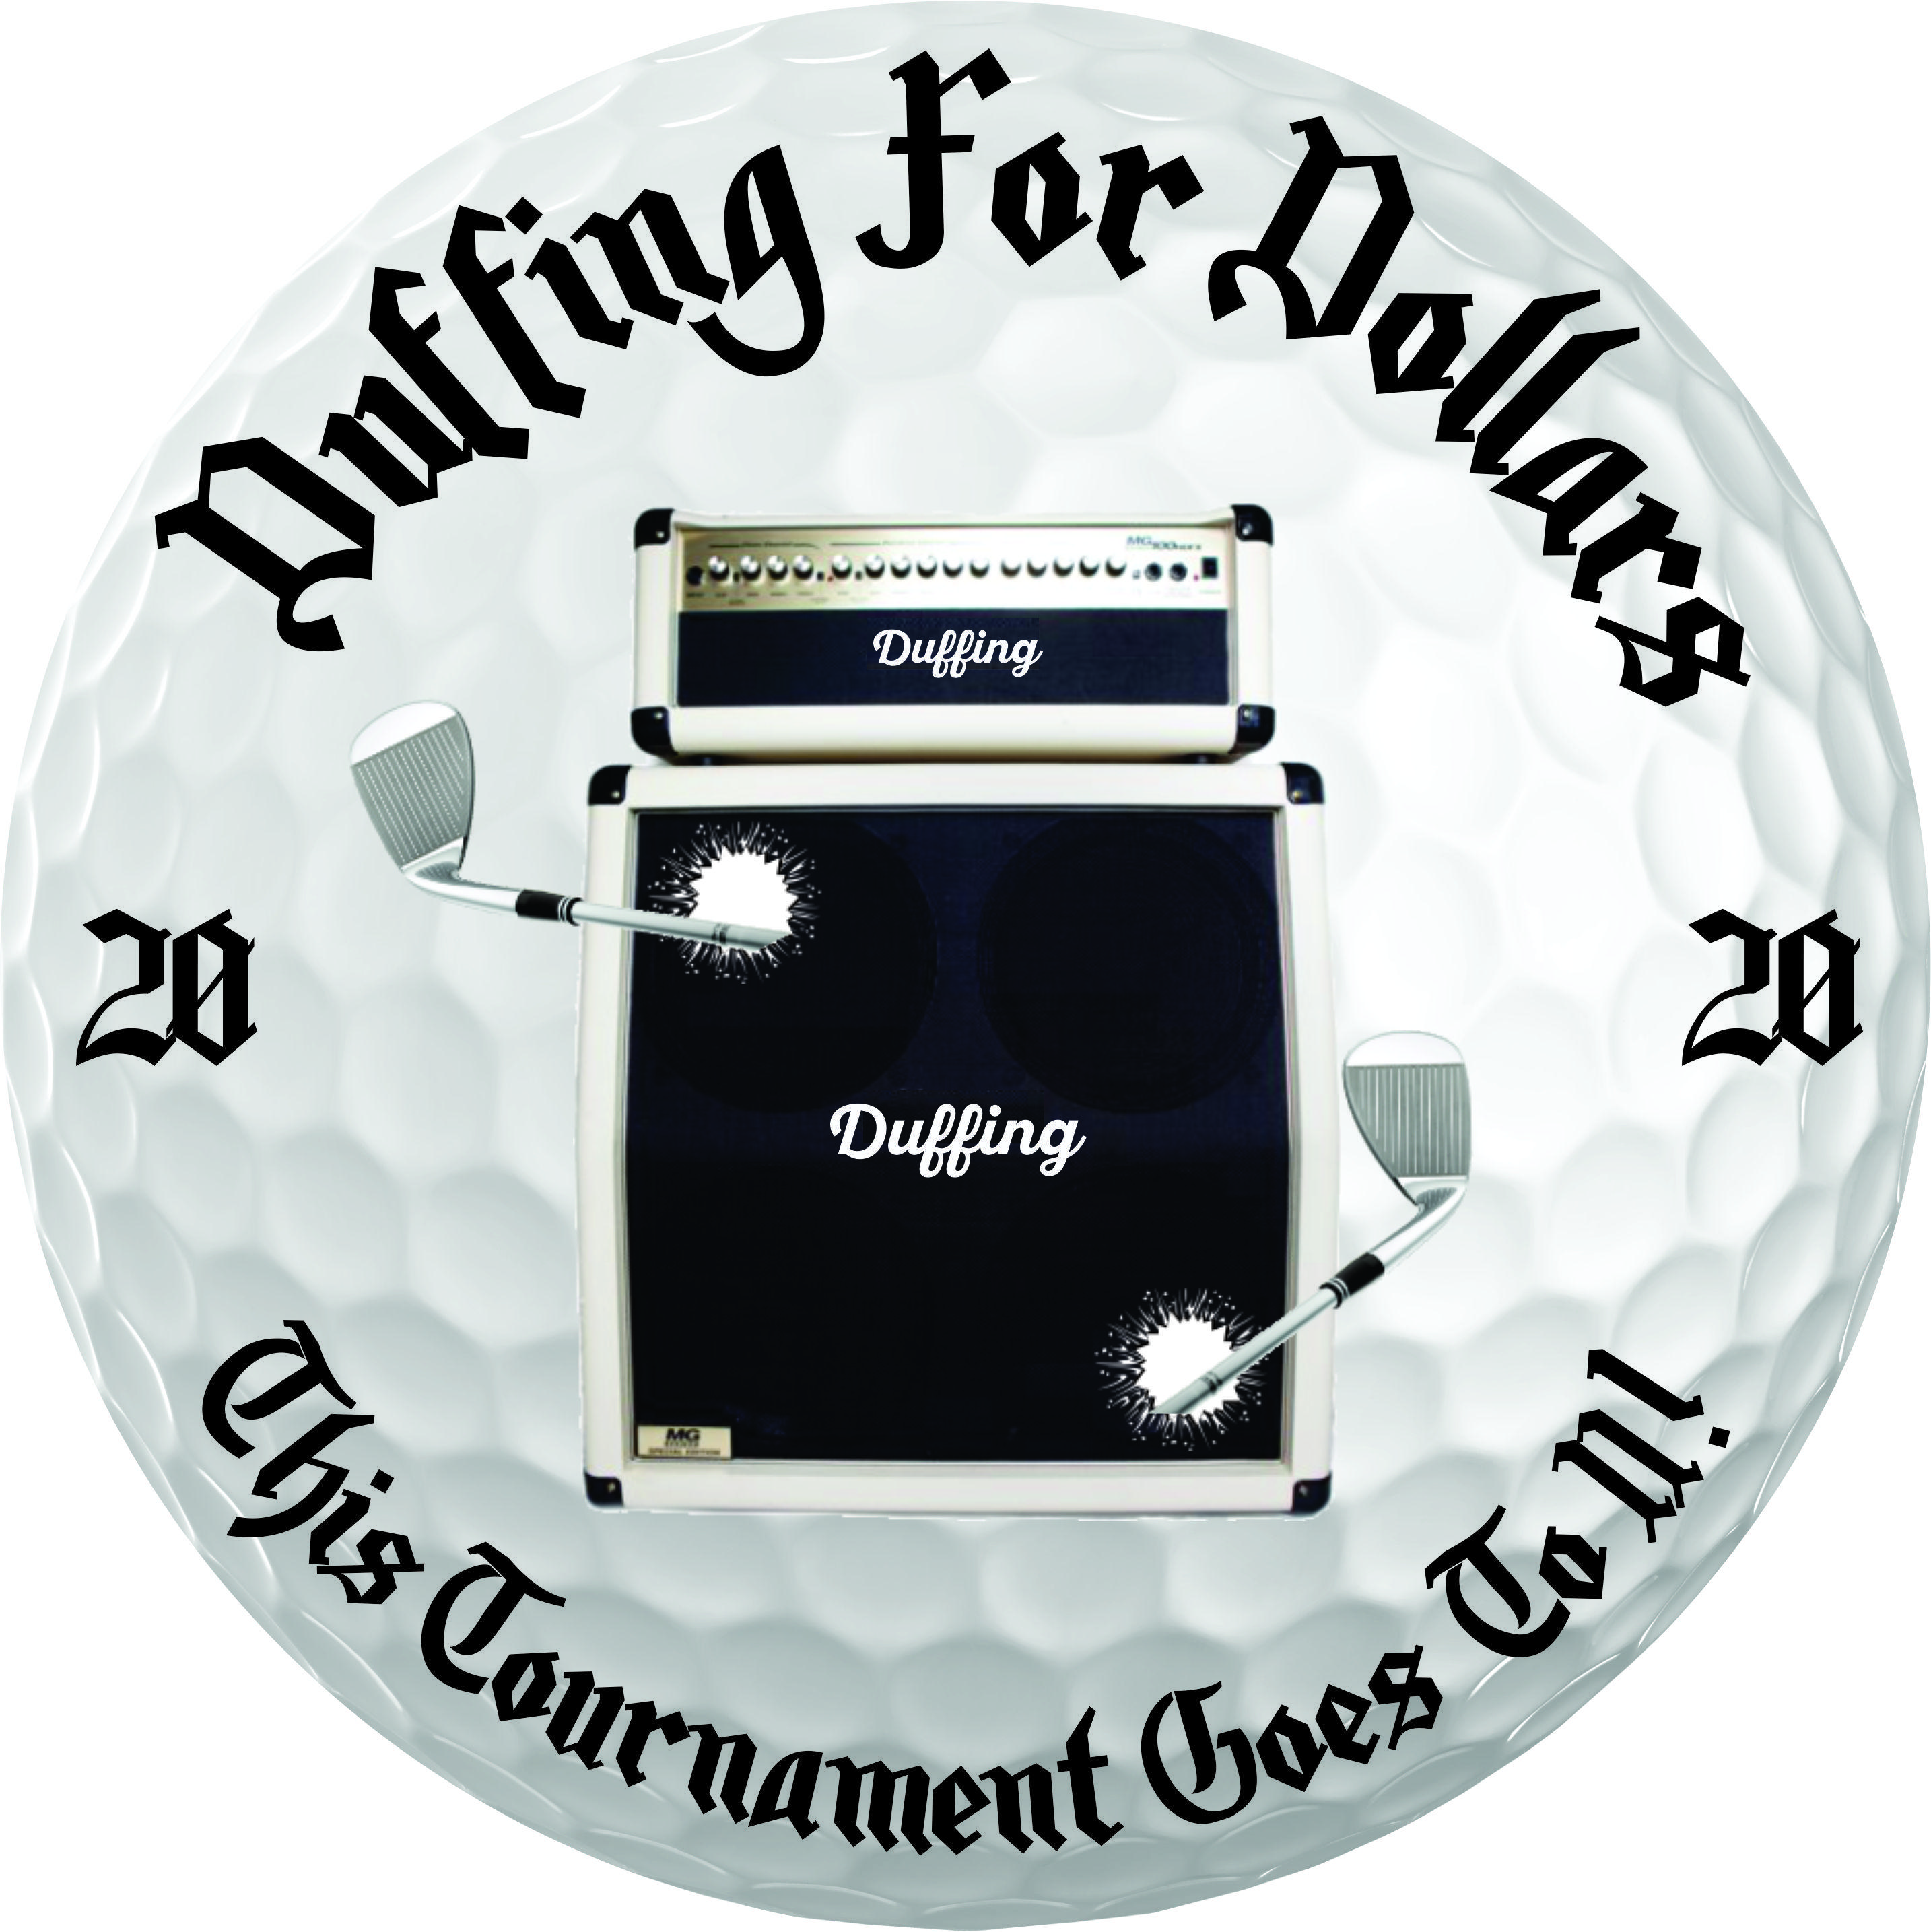 2020 Duffing For Dollars Charity Golf Tournament & Dinner